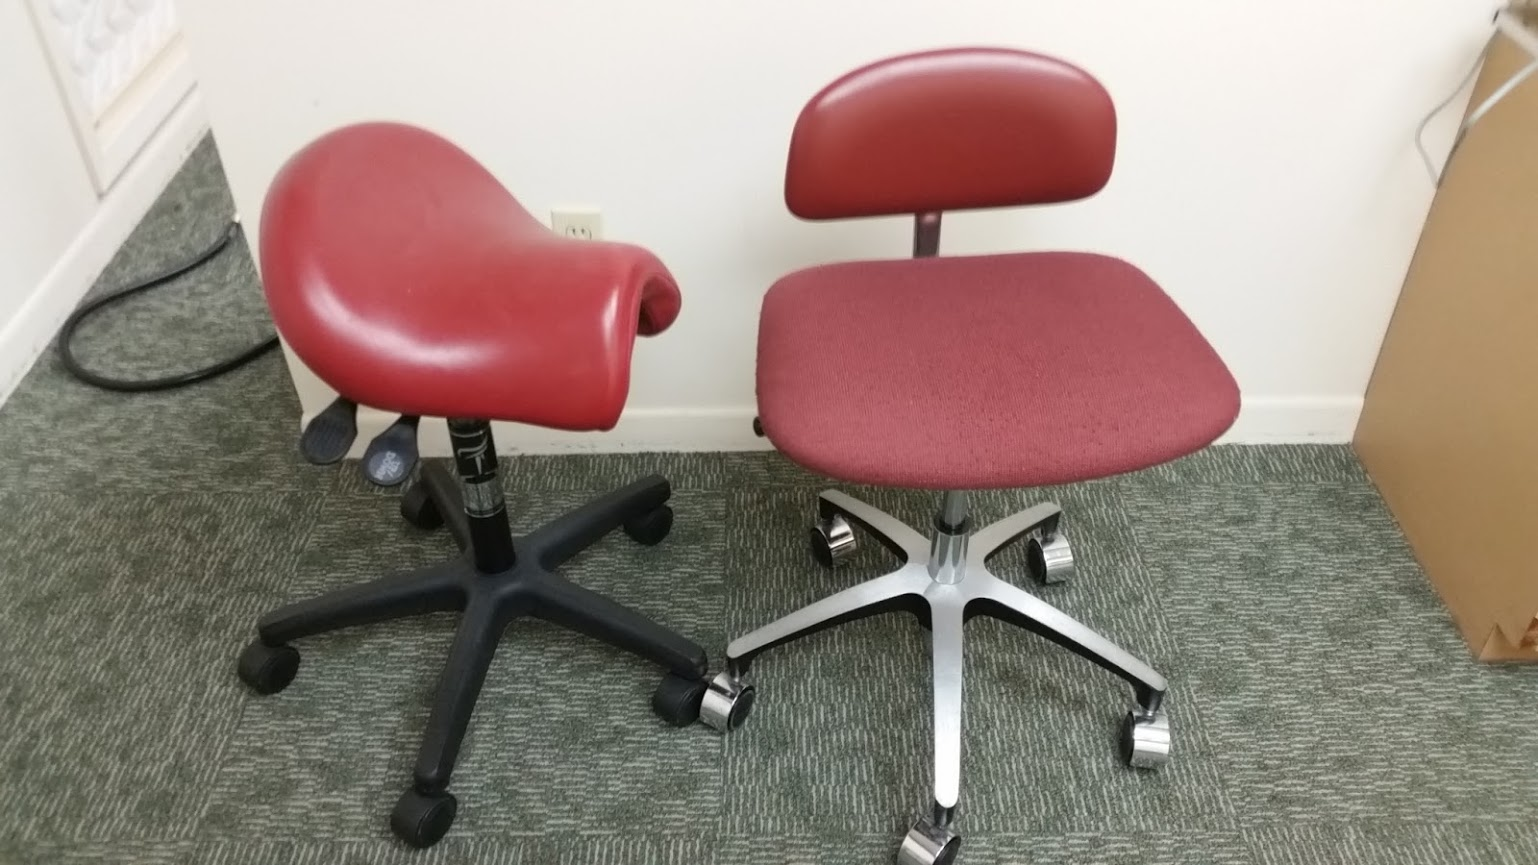 Lot 53 - Lot consisting of 2 dental assistant chairs on casters.